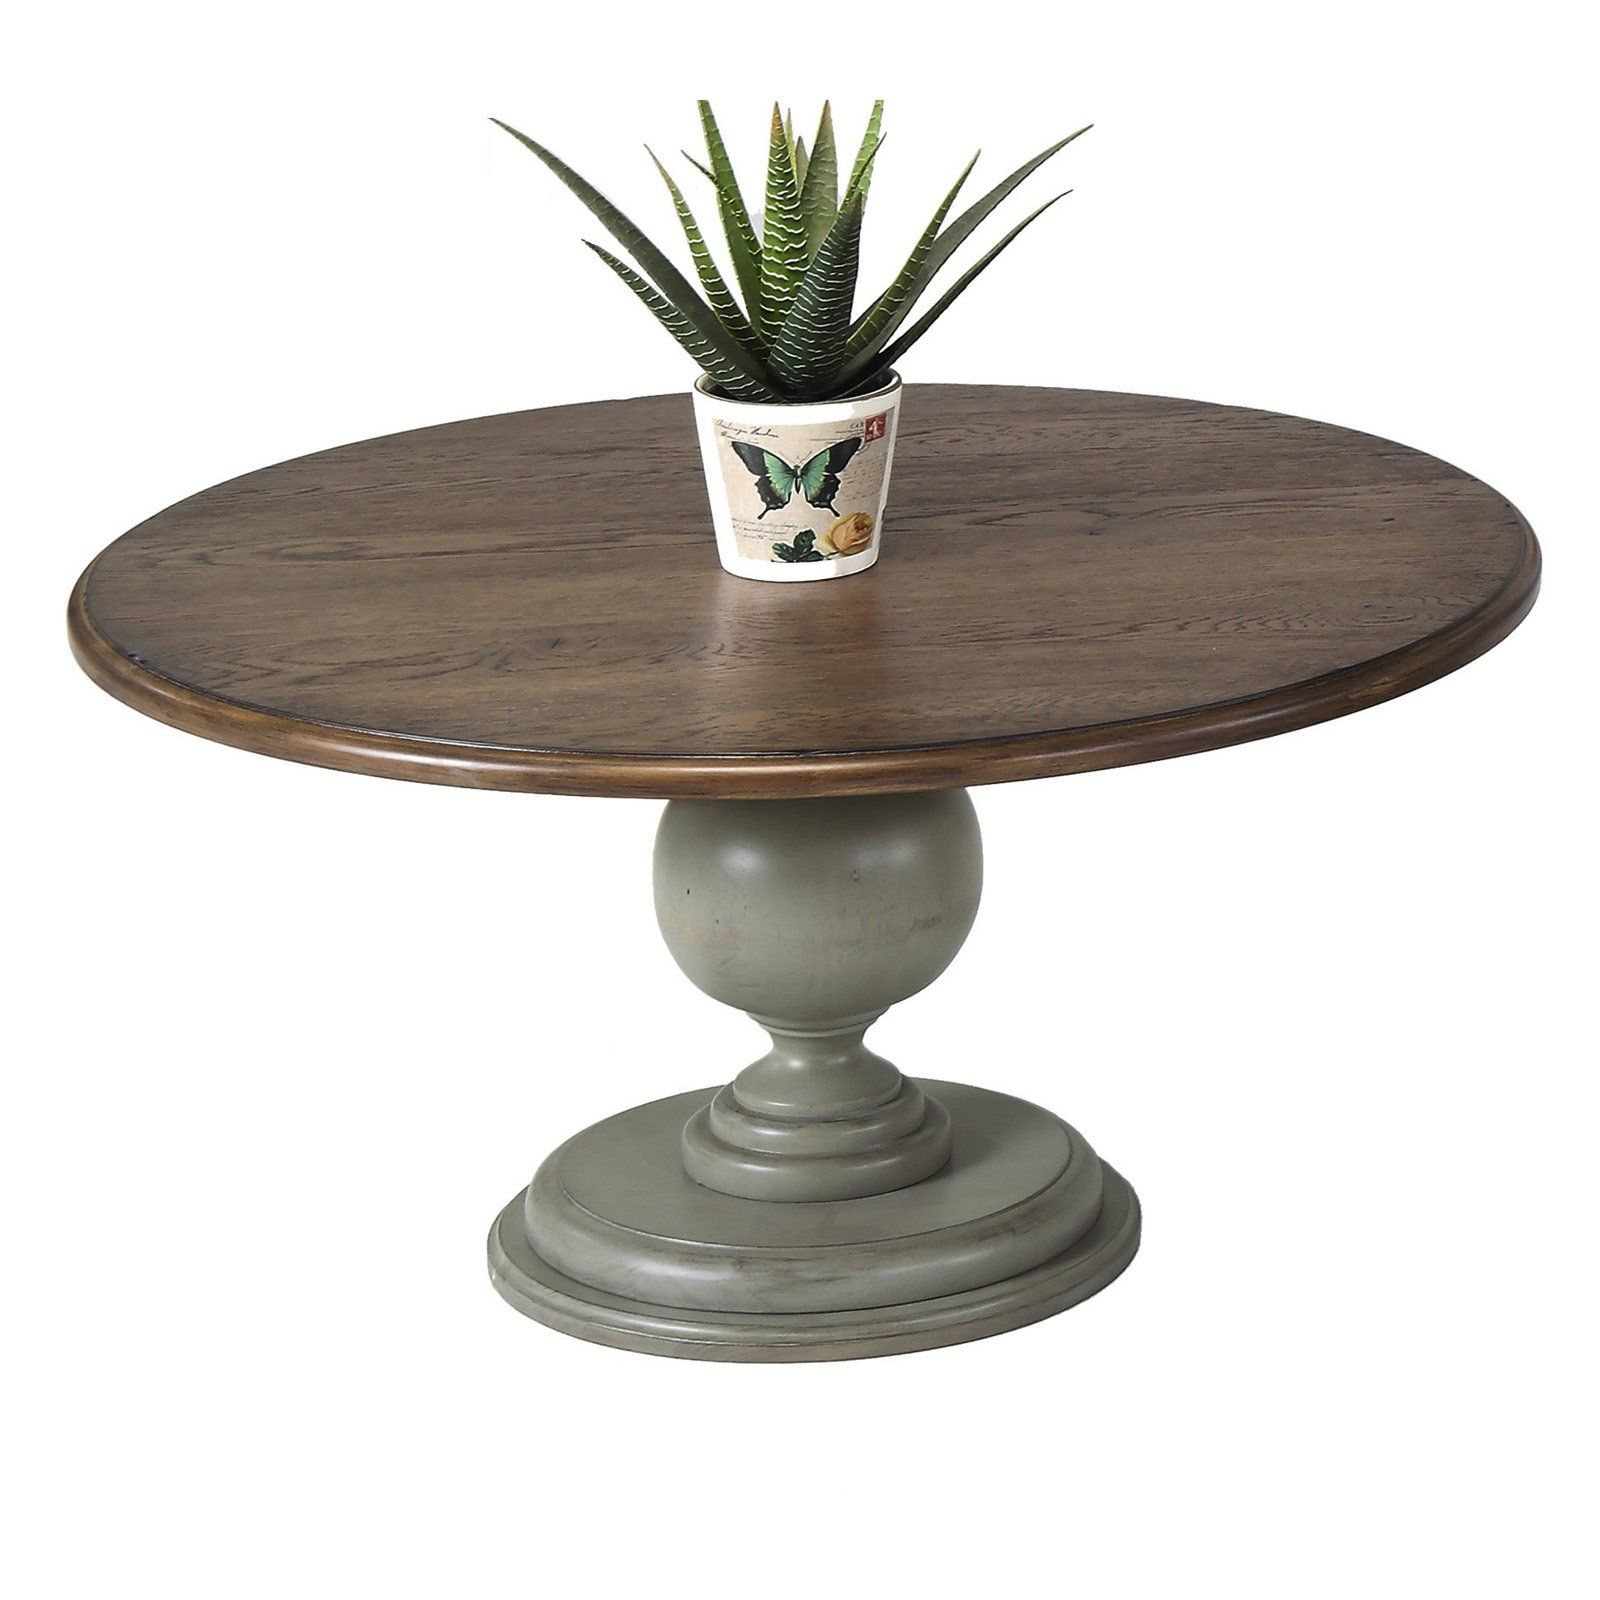 Progressive Colonnades Round Pedestal Coffee Table Enjoy Ample Tabletop Space When You Add The Pr Pedestal Coffee Table Round Coffee Table Small Coffee Table